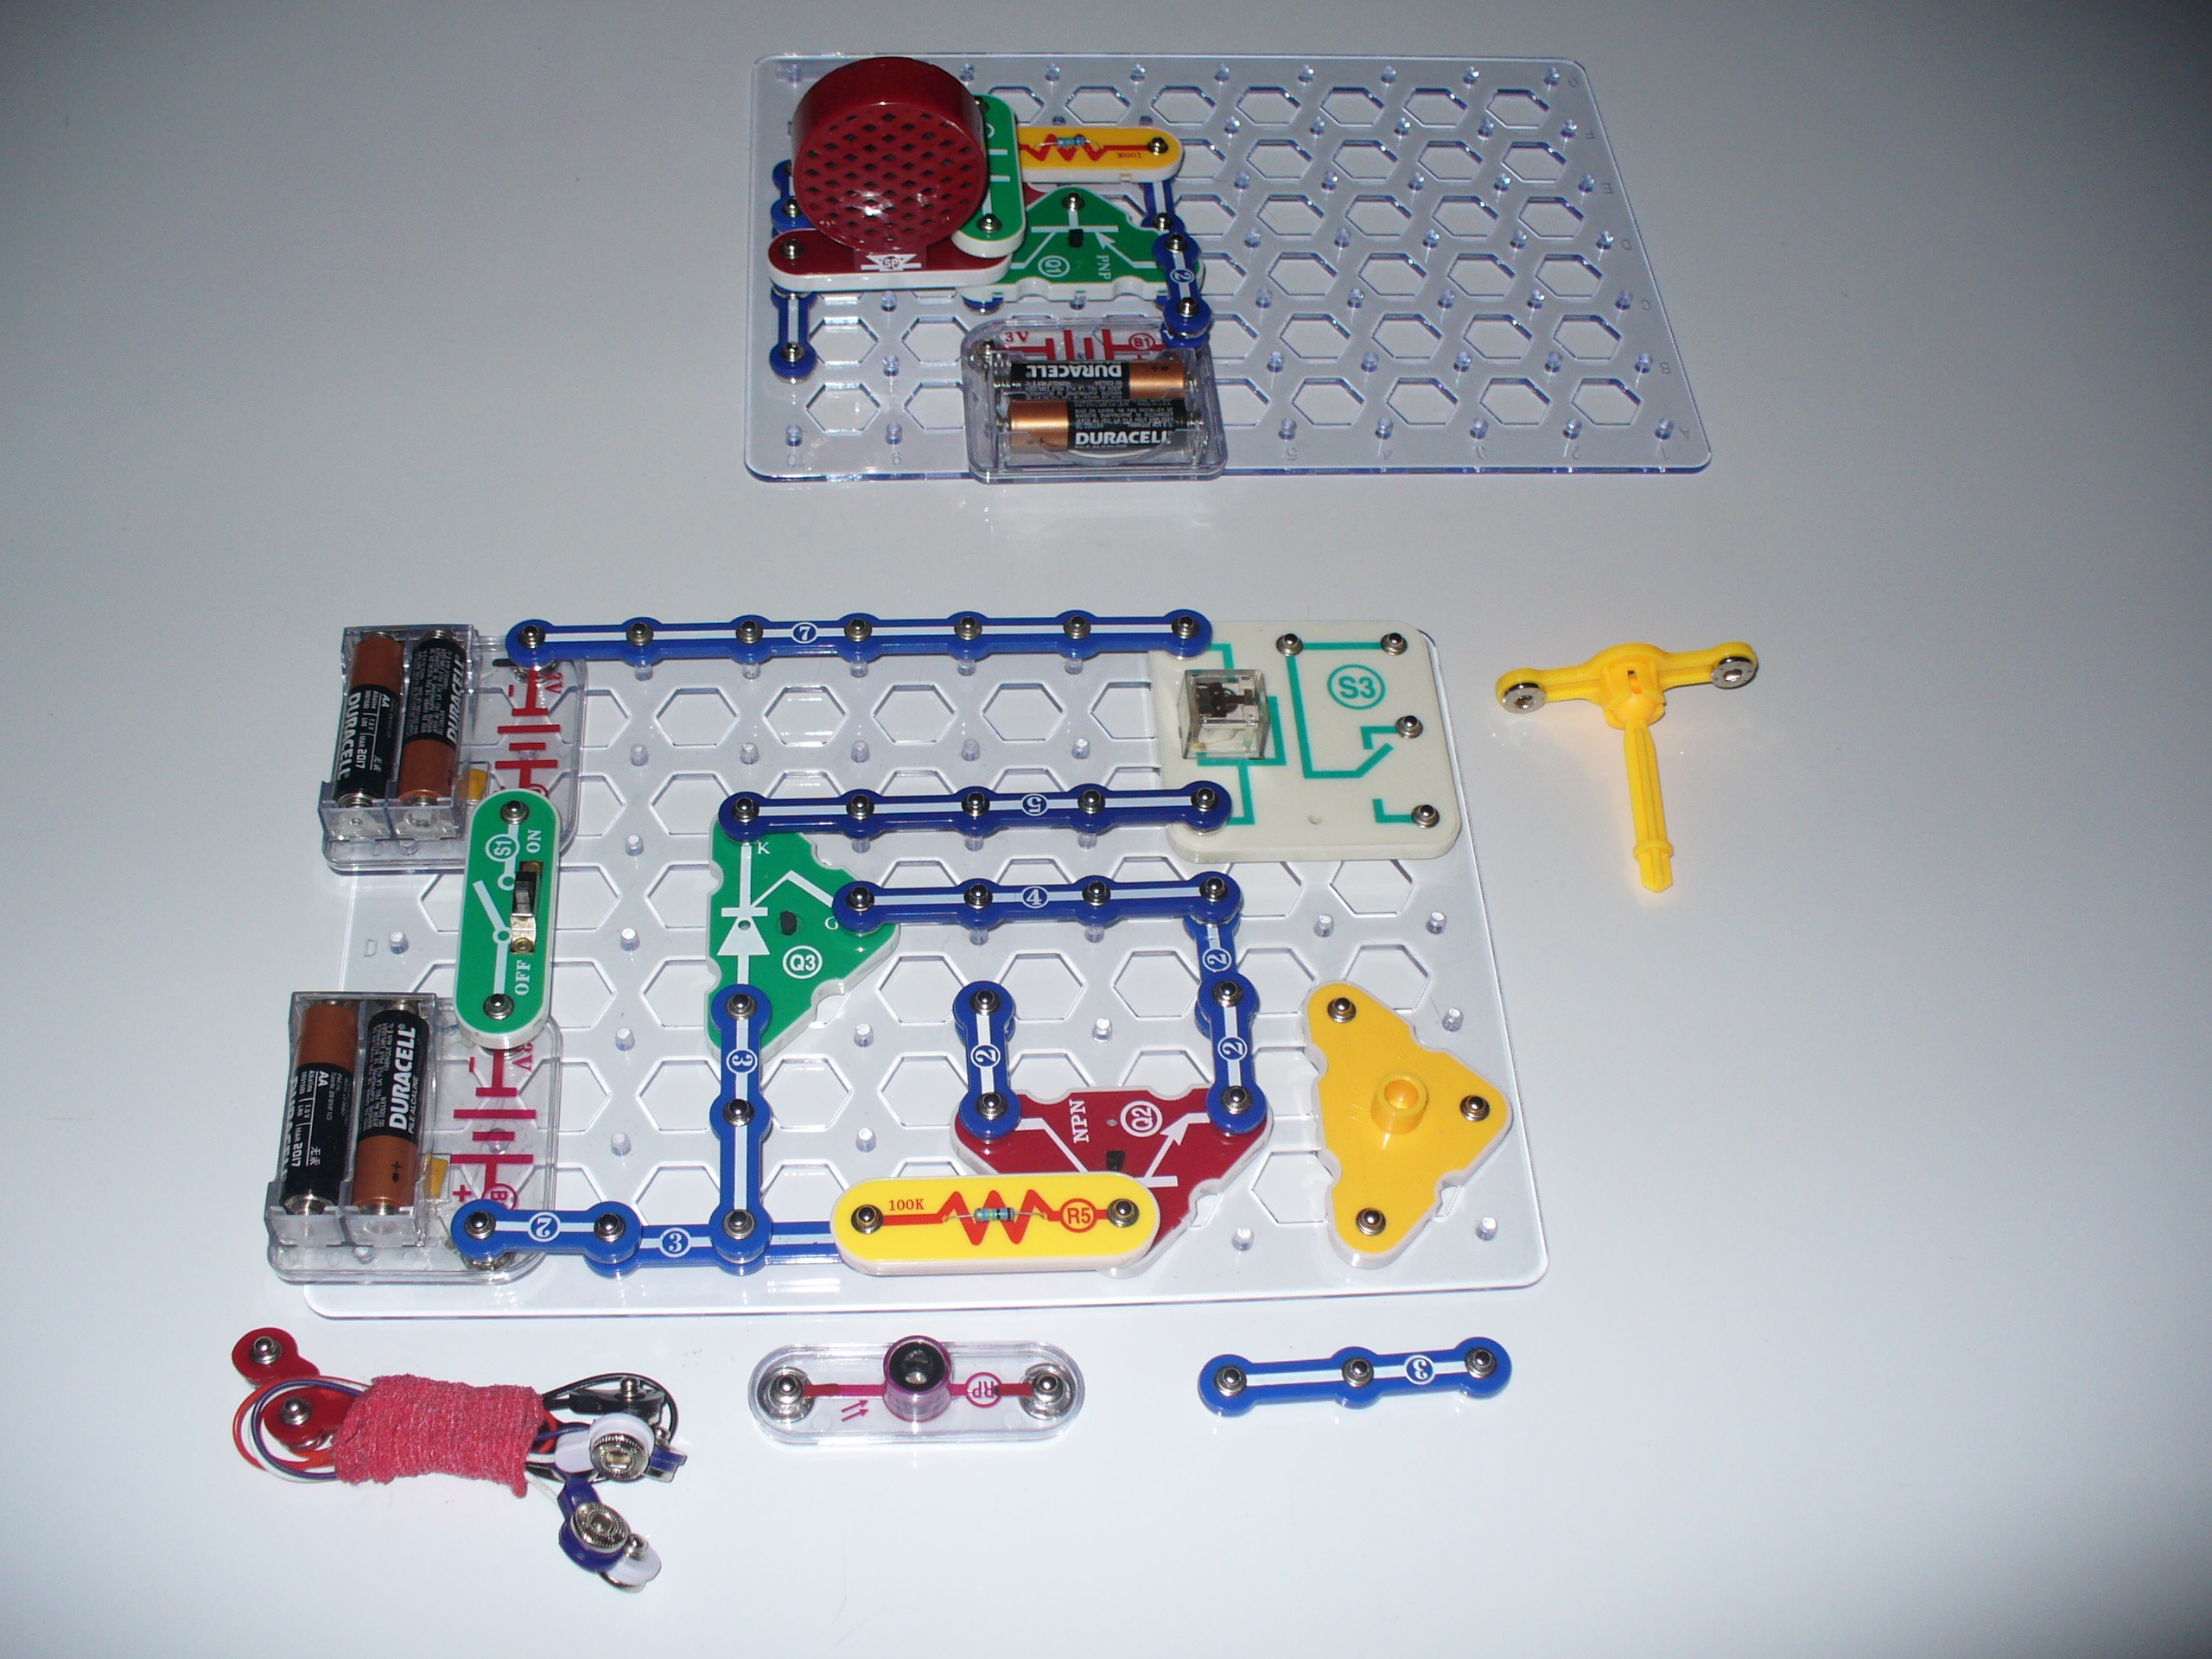 Laser Tripwire and Alarm Using SnapCircuits